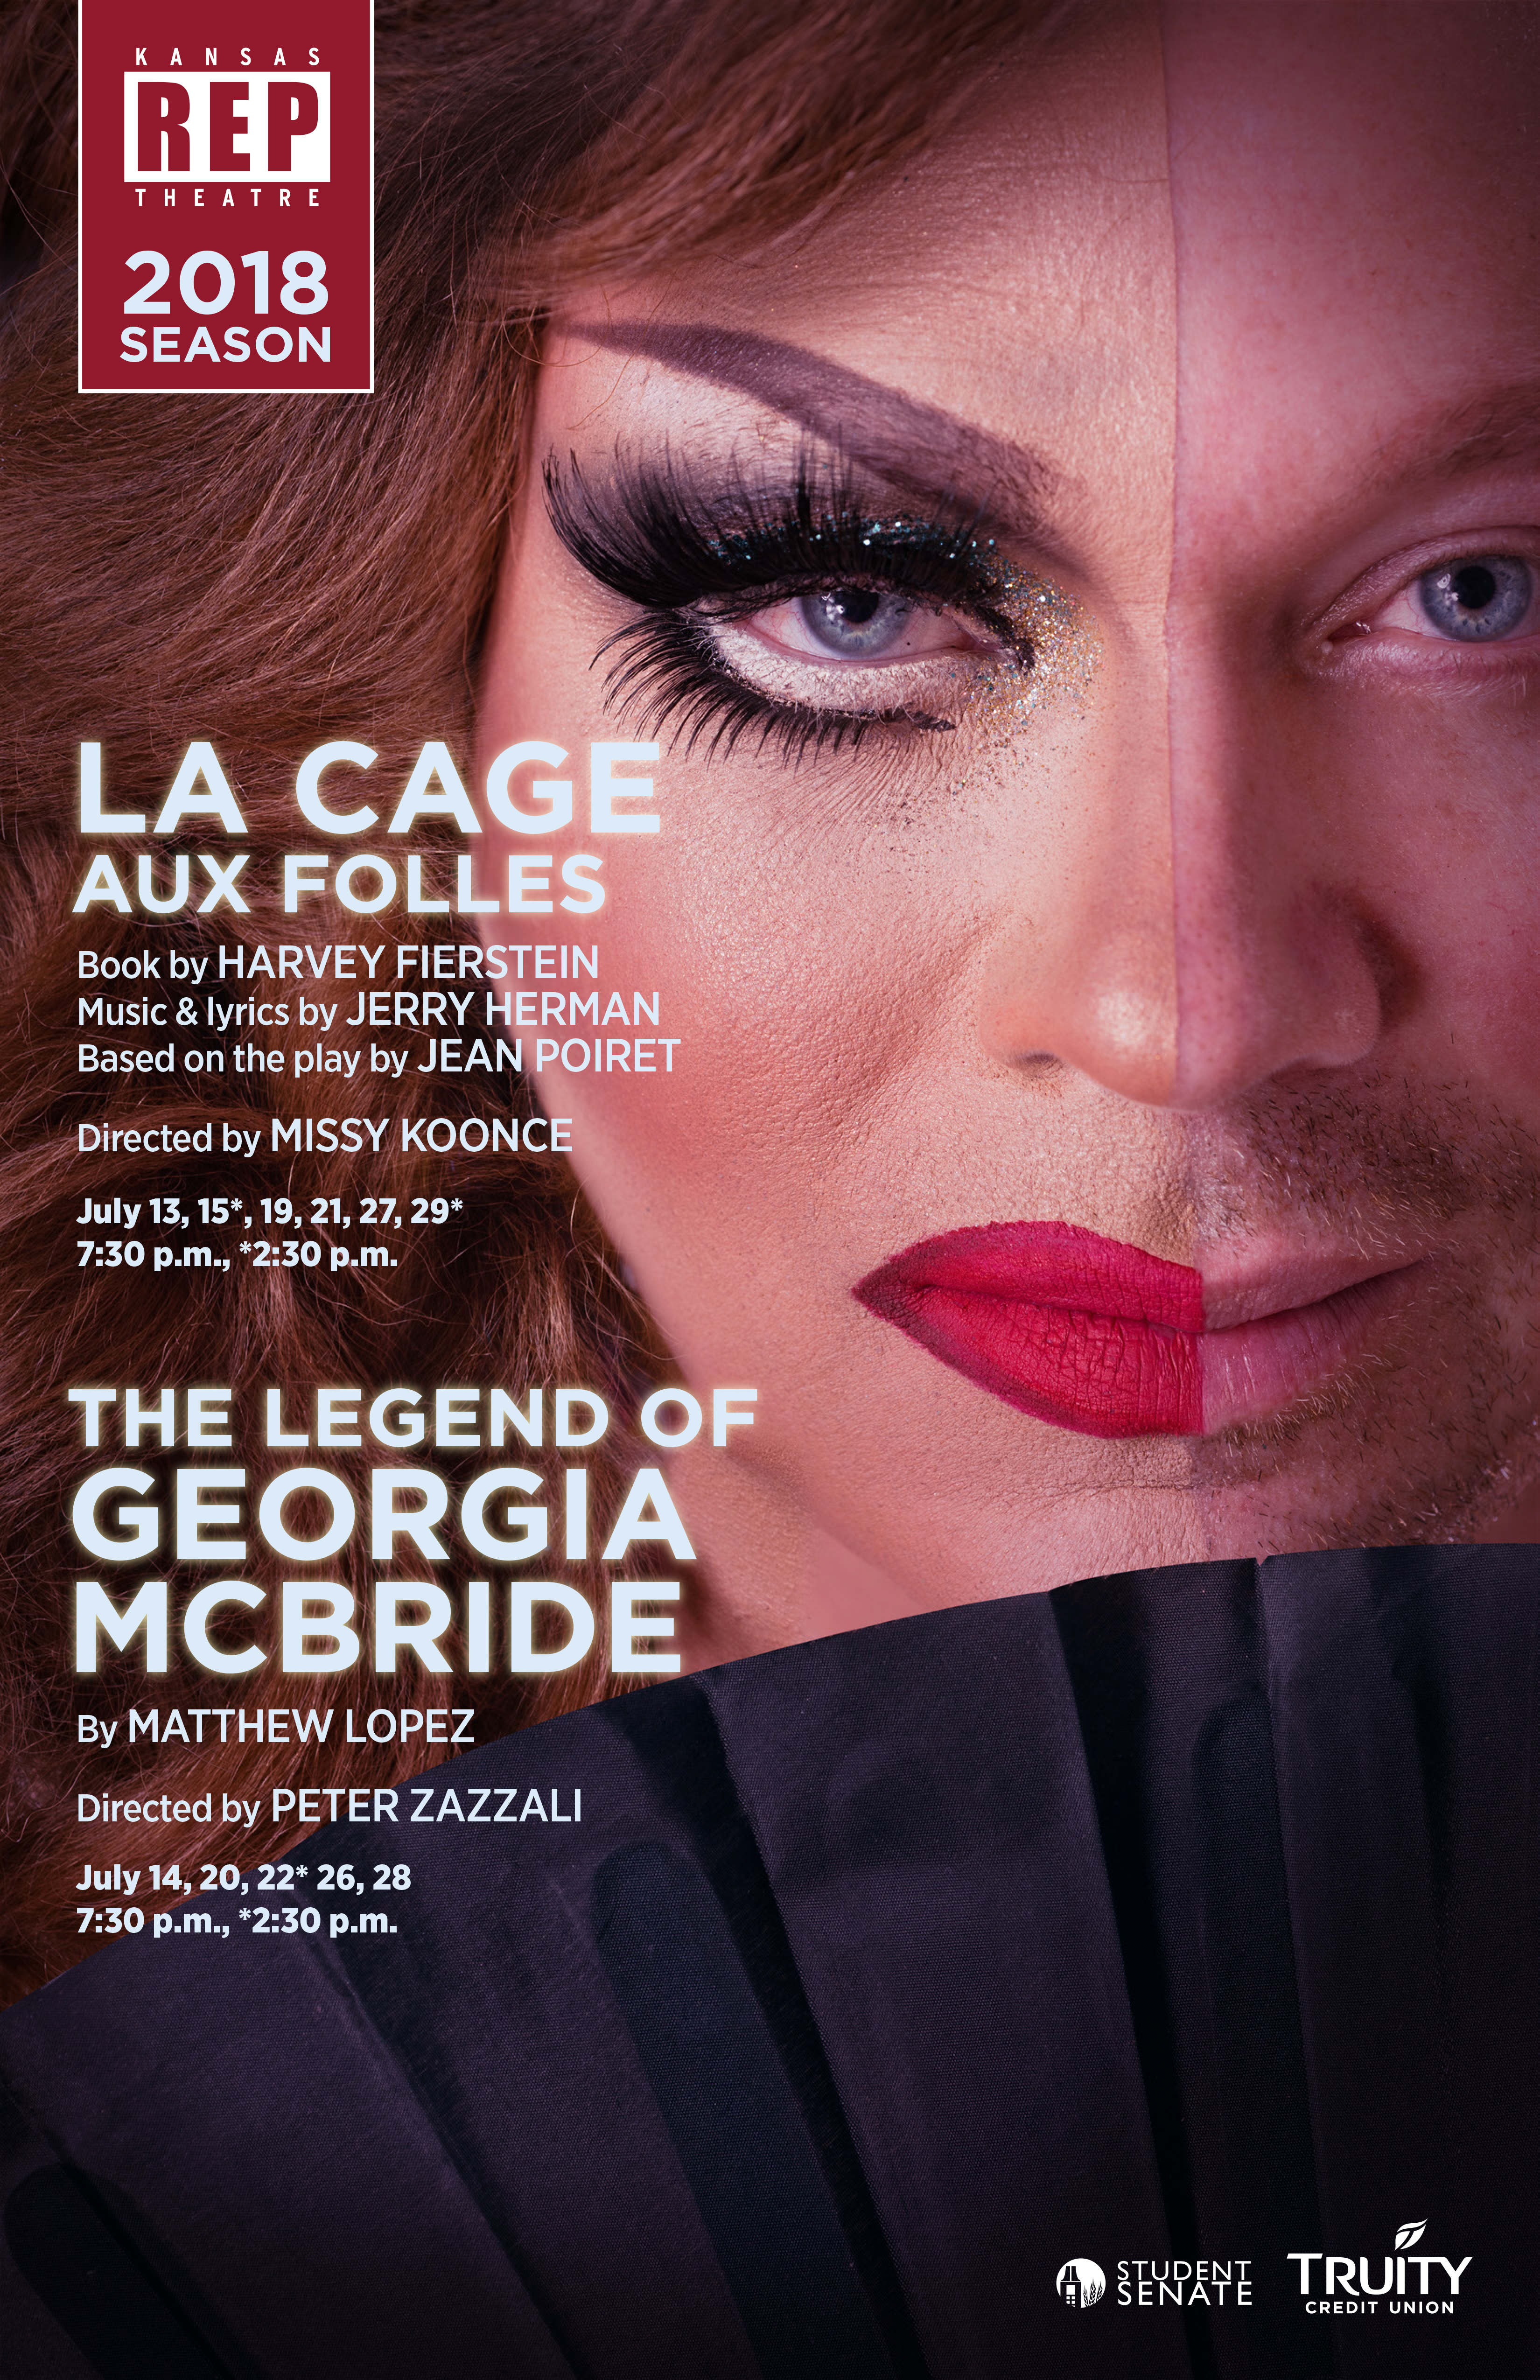 Show artwork for La Cage aux Folles and the Legend of Georgia McBride